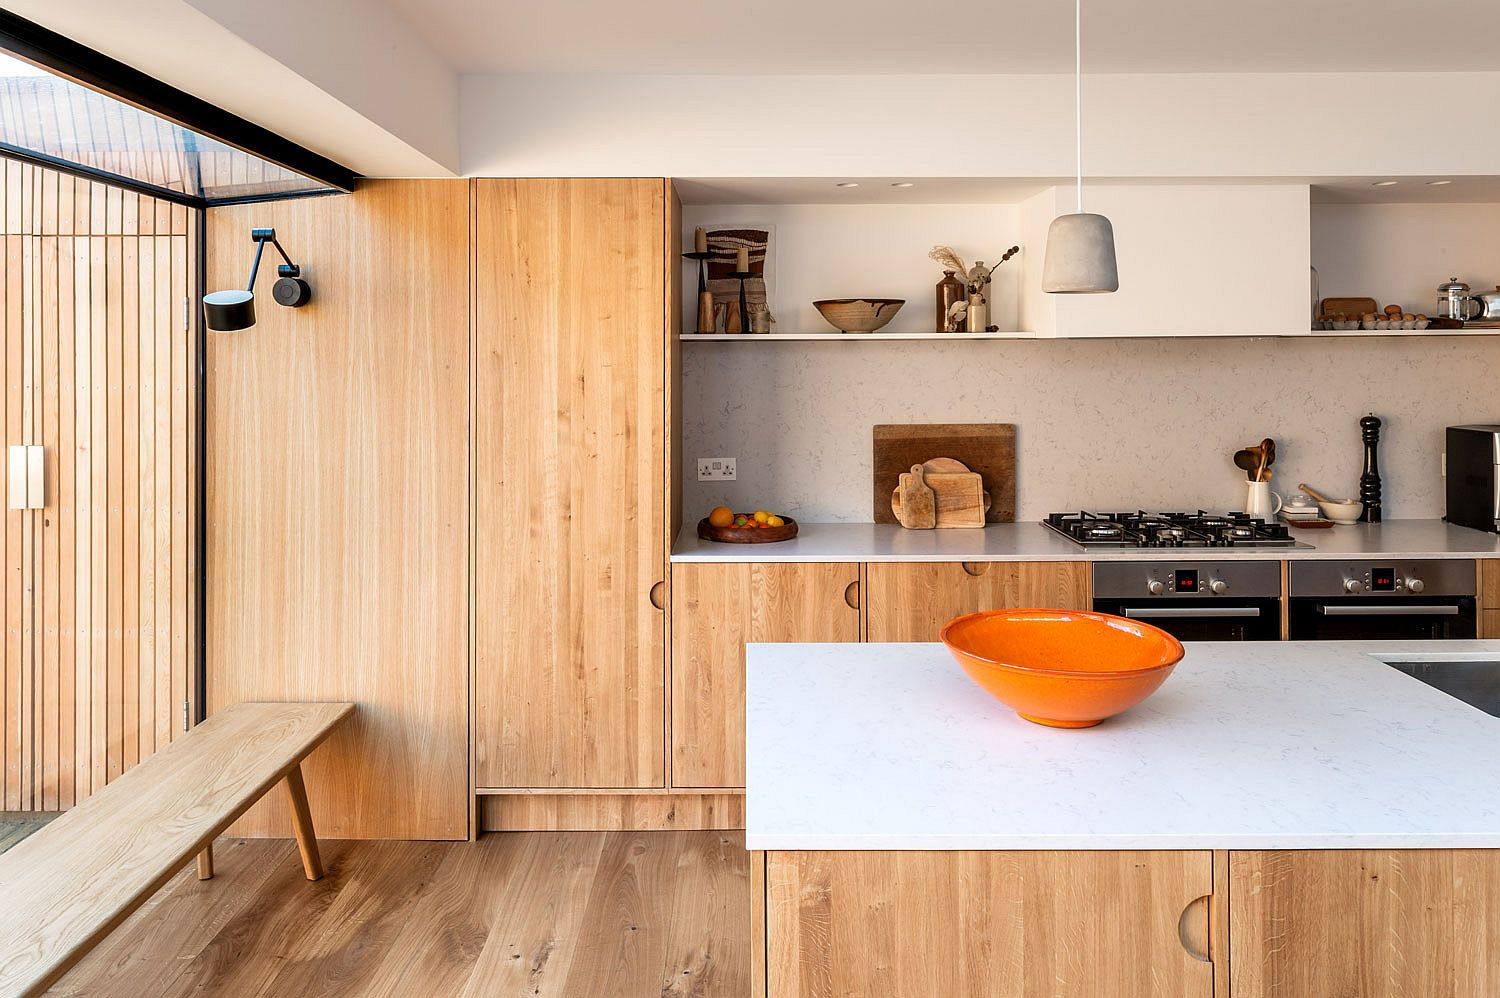 White and wood kitchen palette is quickly becoming a modern favorite that you just cannot miss